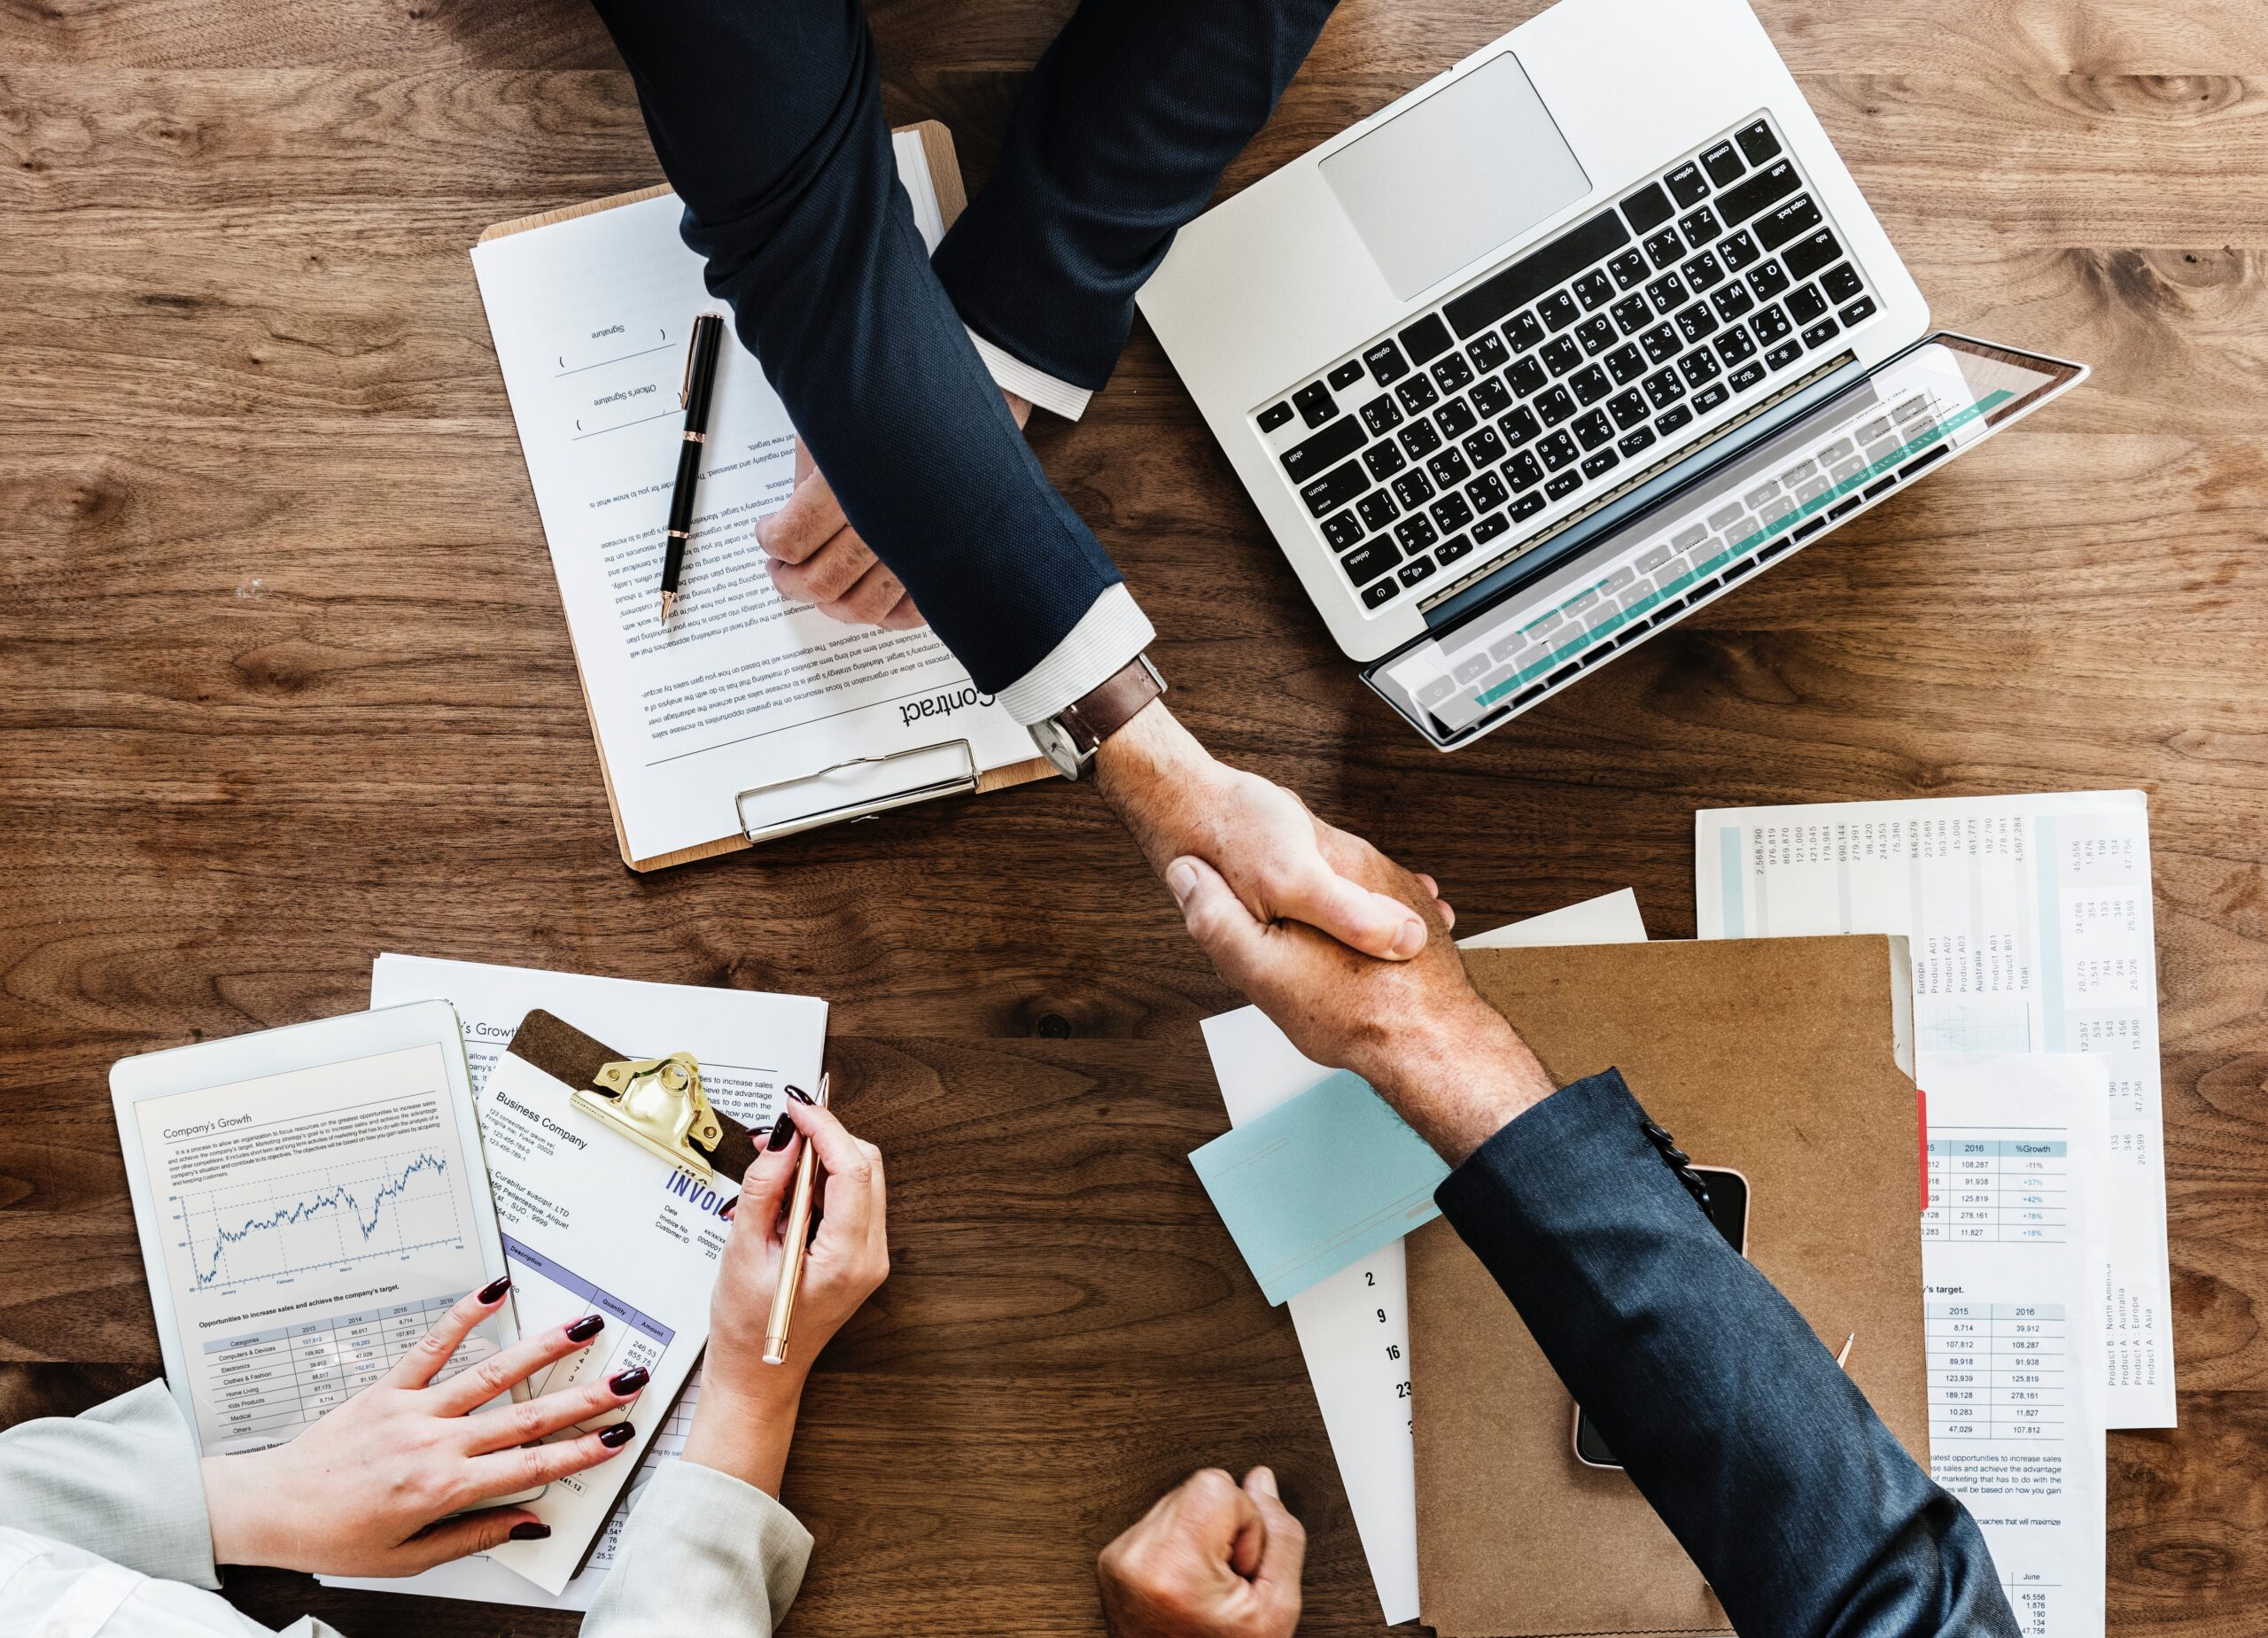 professional people shaking hands after the applicant is aiming for high-paying jobs